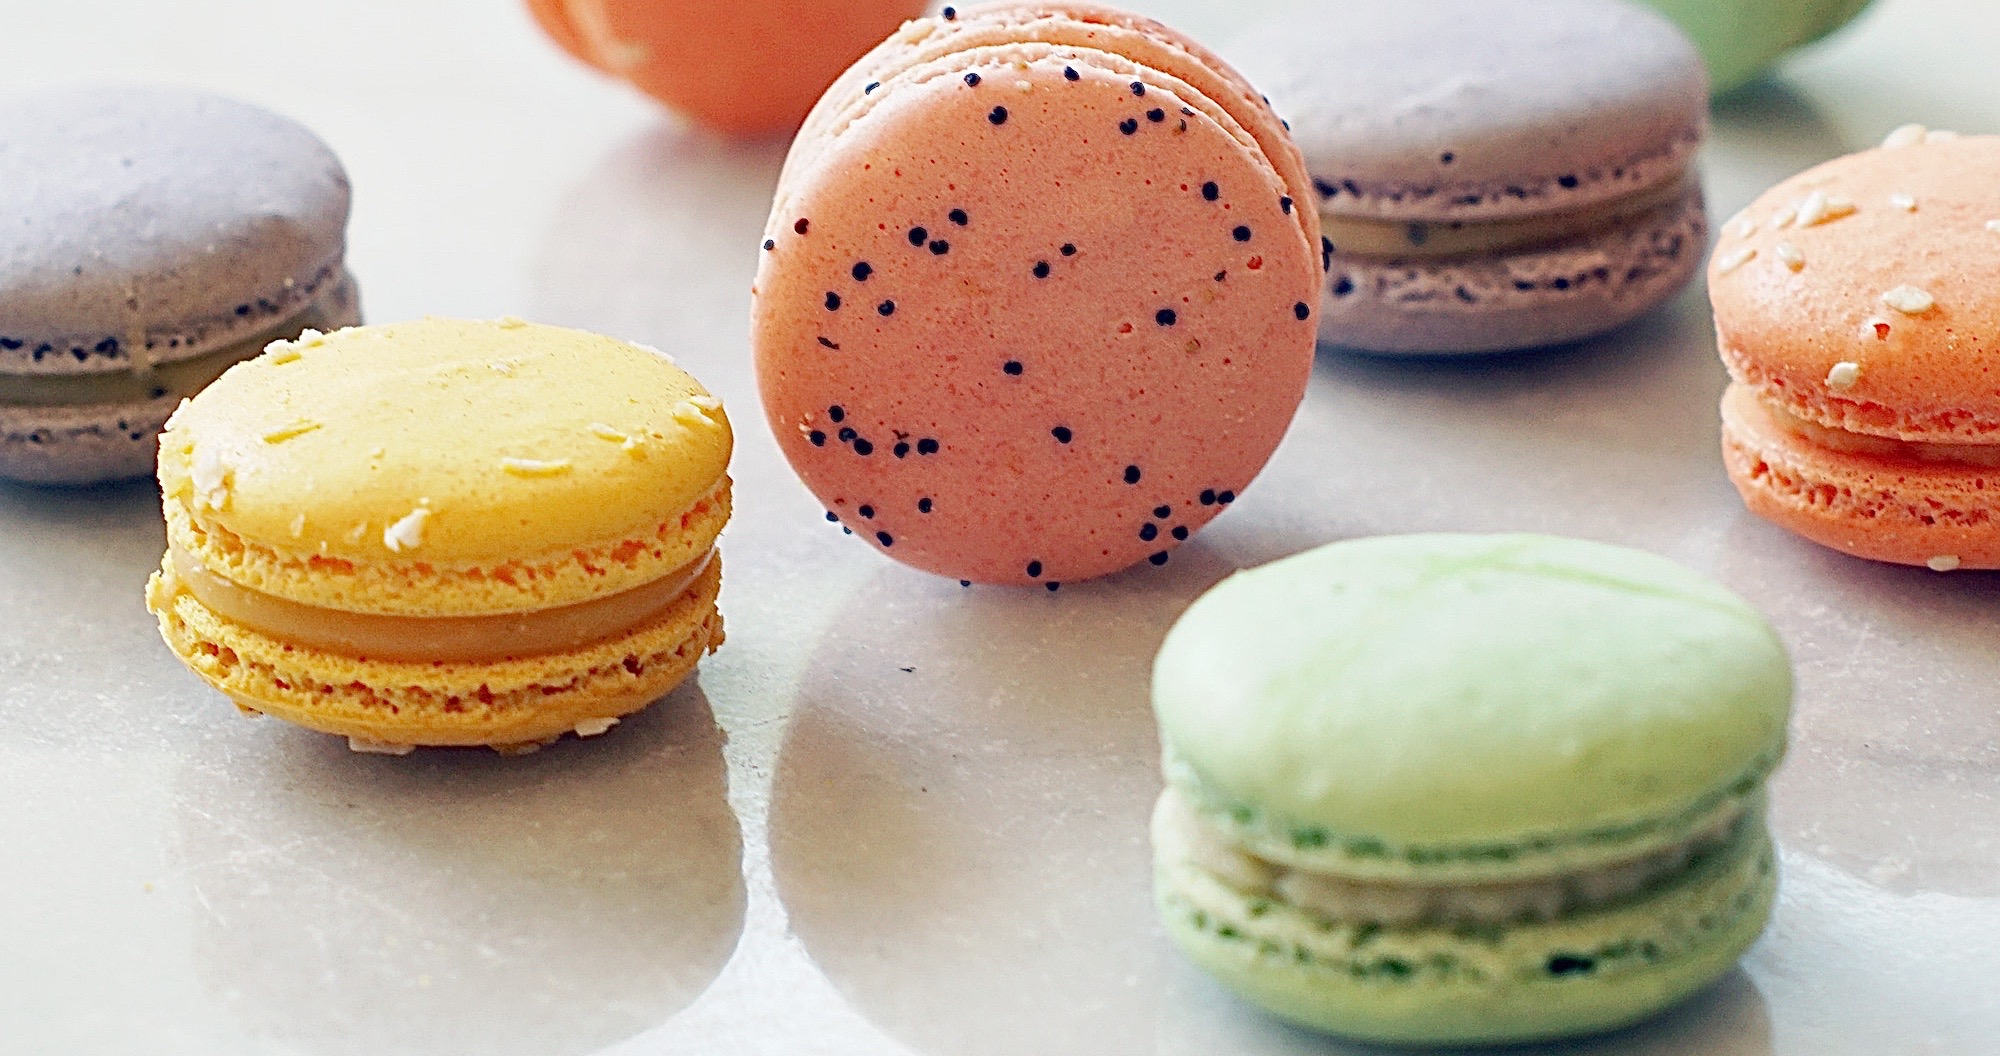 Celebrate Macaron Day Tomorrow at Faubourg Paris and Support BC Cancer Foundation